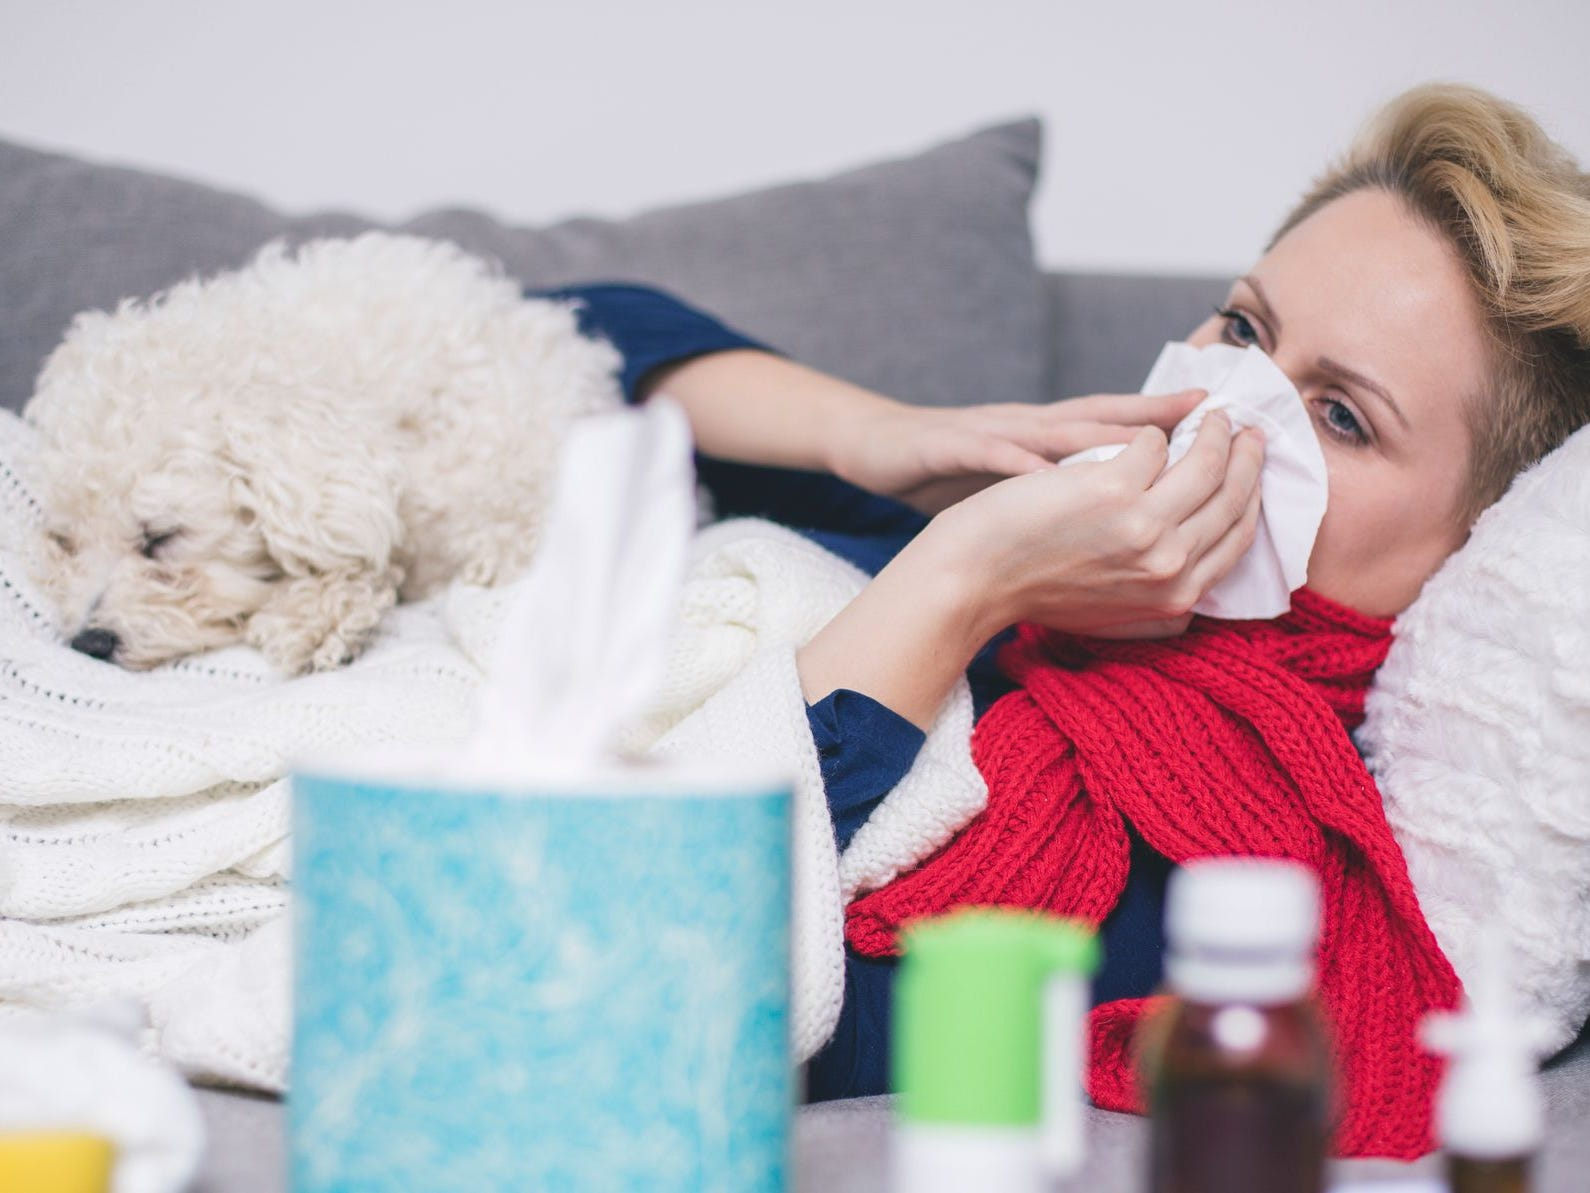 QUIZ: Test Your Flu IQ